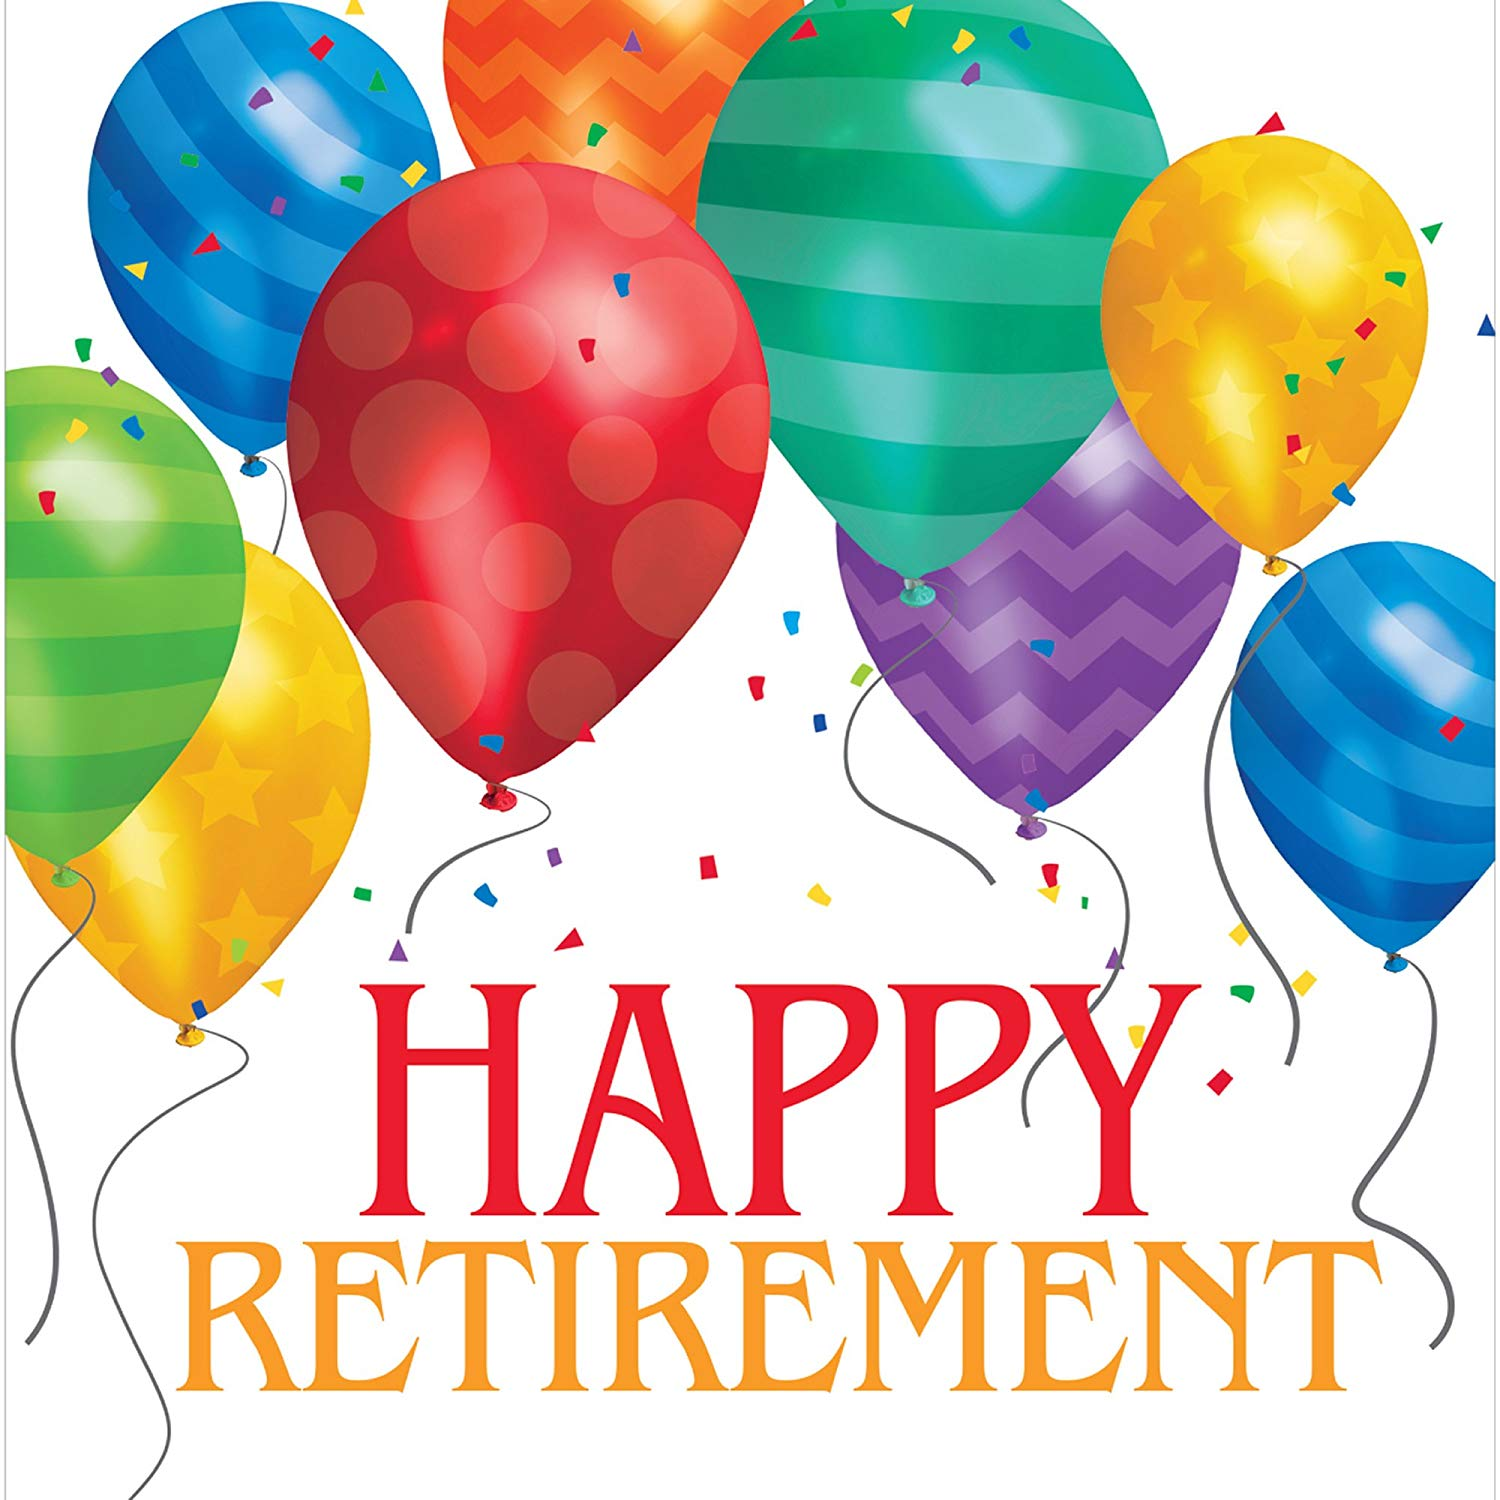 Balloons clipart retirement. Amazon com creative converting